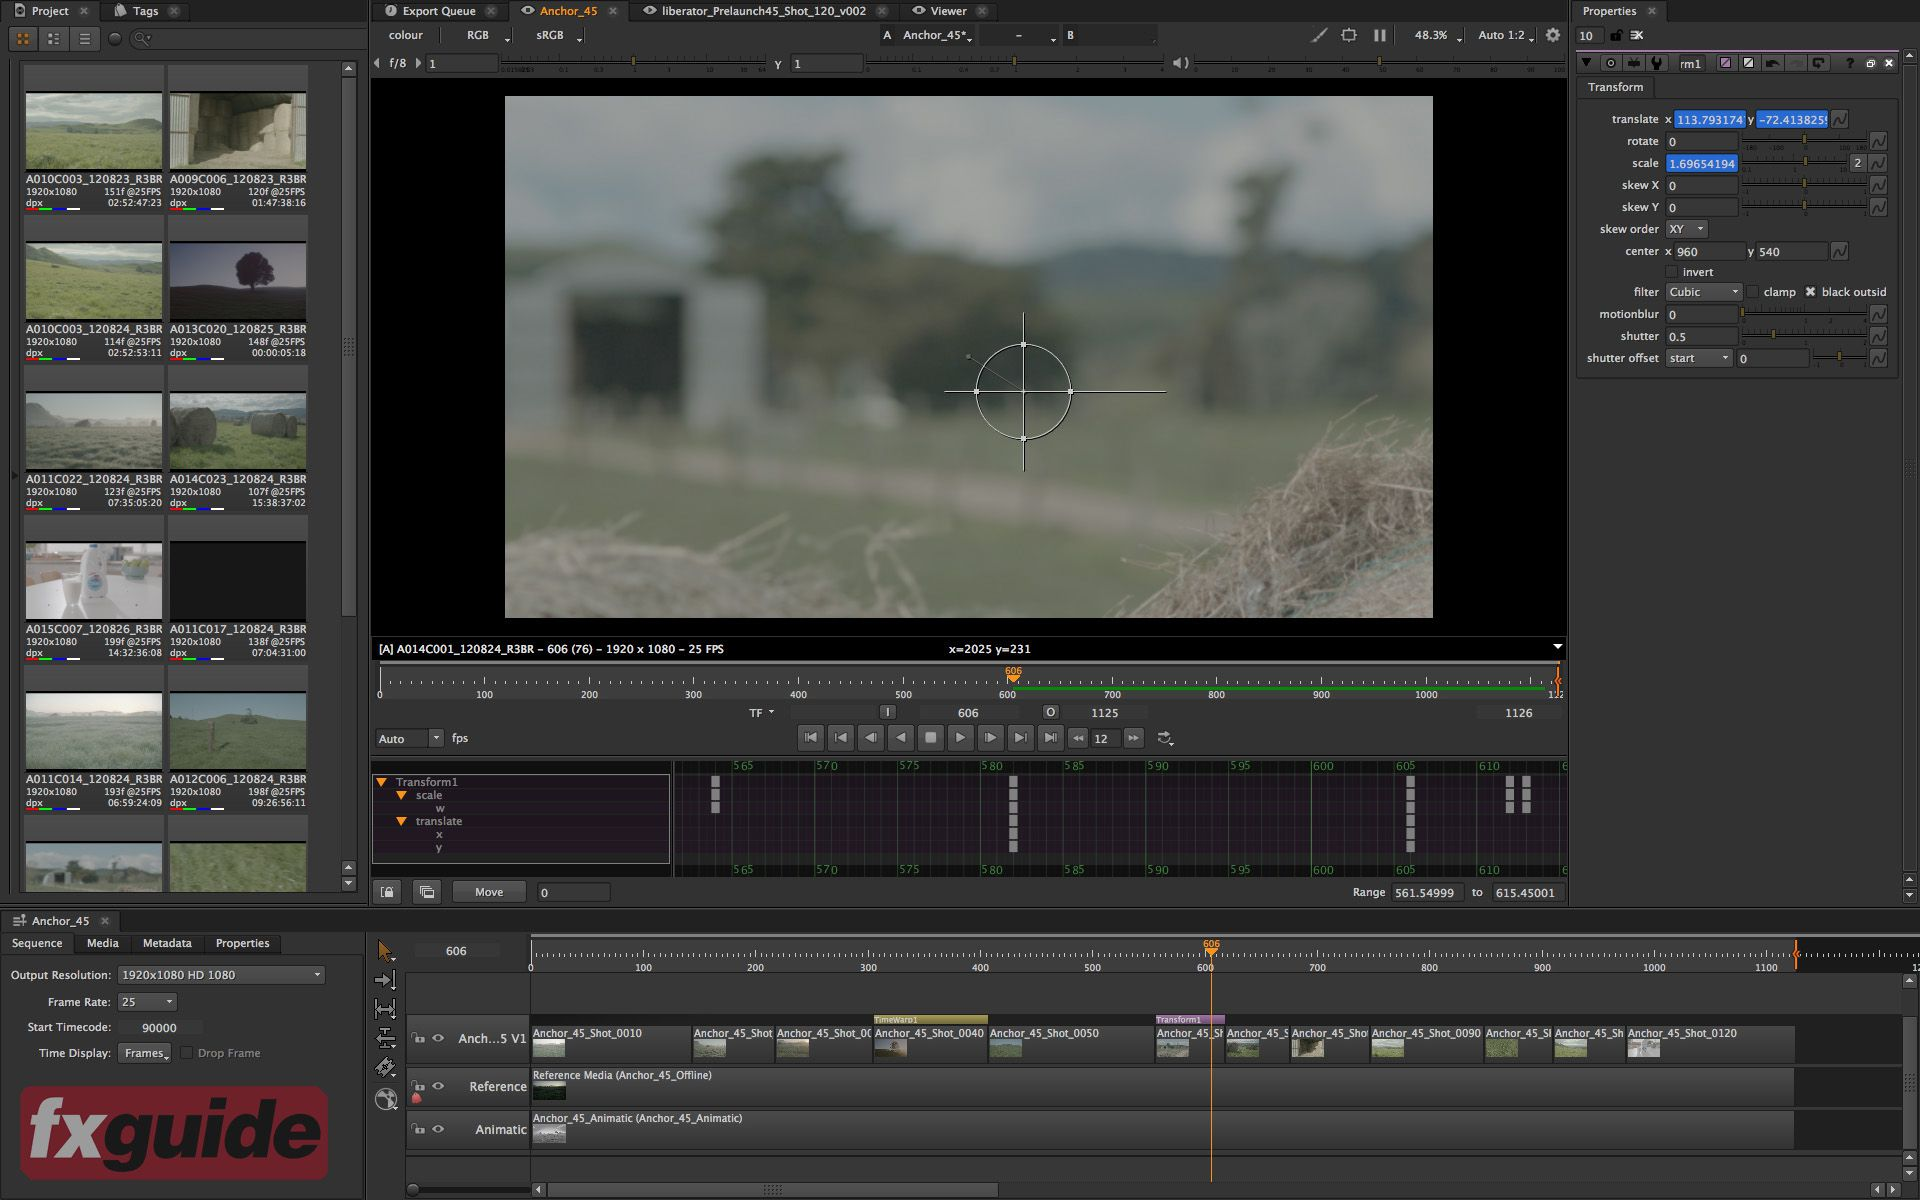 NUKE STUDIO – Exclusive interview + First Screen shots – fxguide